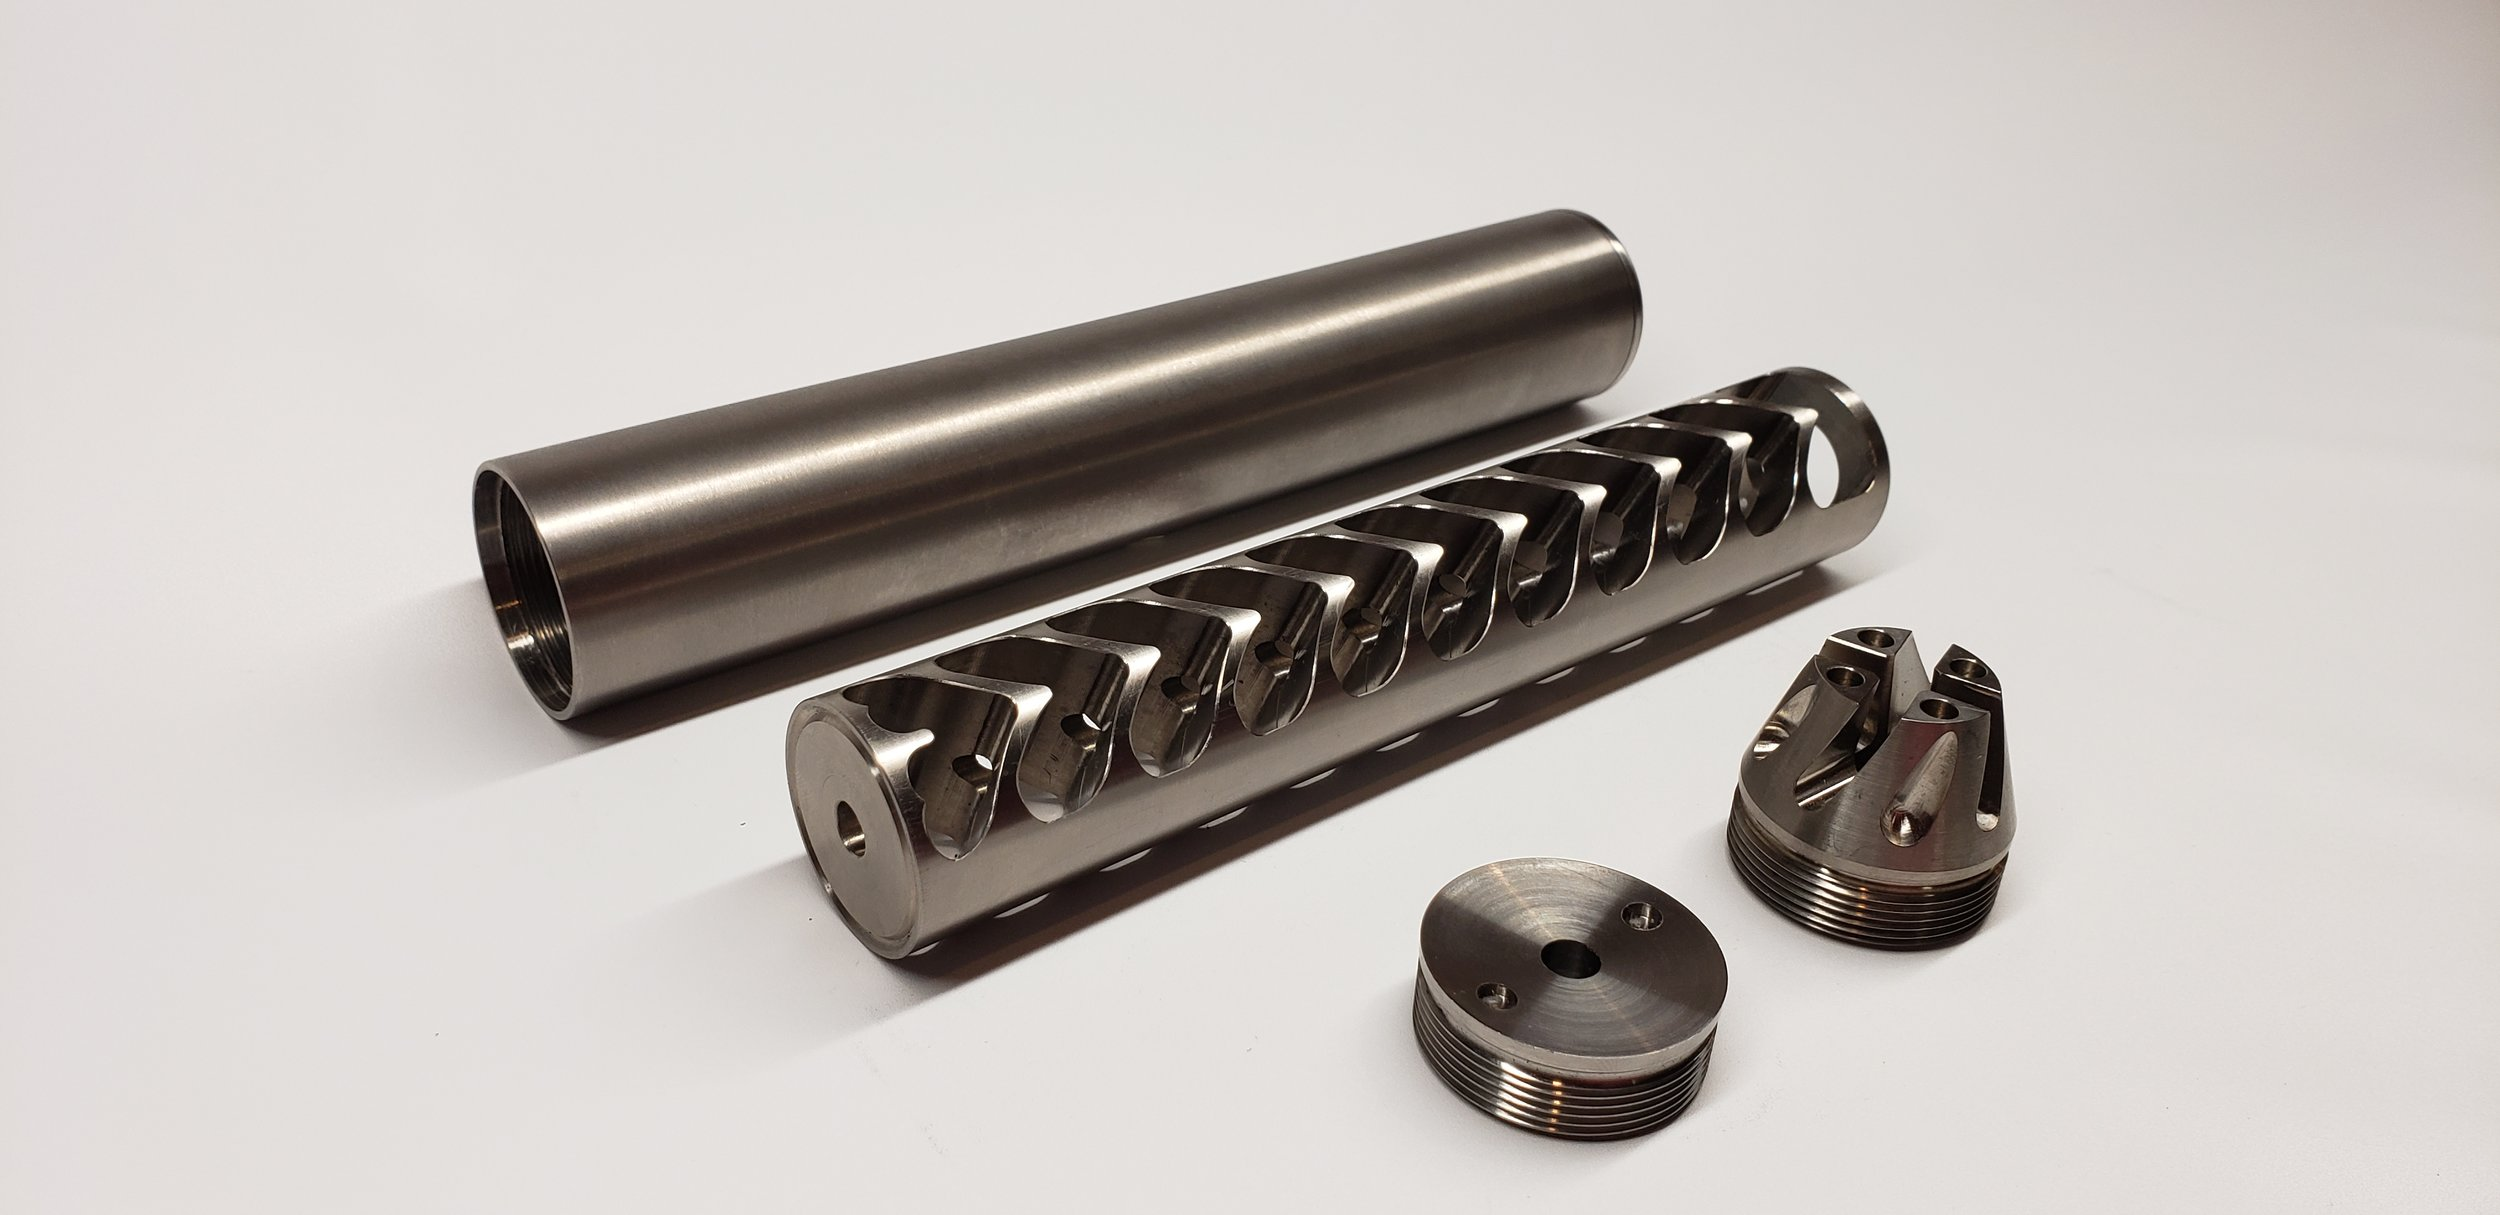 """223/5.56 Titanium - Shown with standard and optional tactical end cap Available in Titanium and Stainless Steel1.55"""" x 8.8""""1/2x28 Thread"""